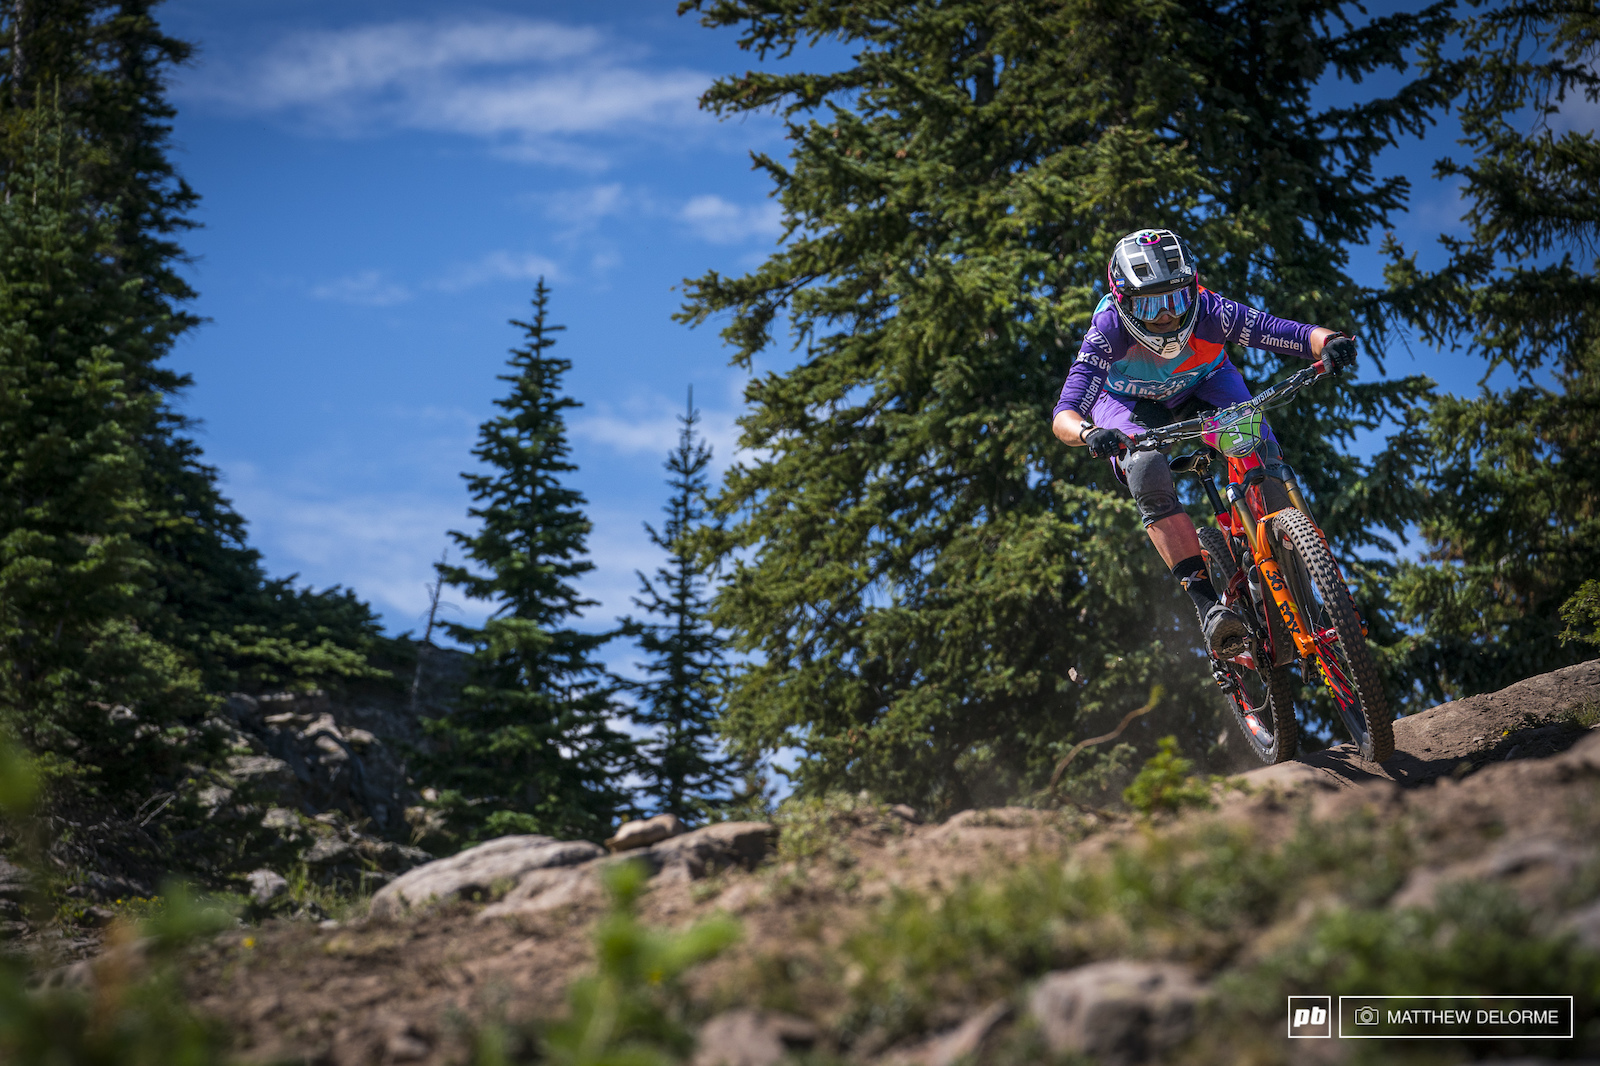 Anita Gerhig took fourth this weekend edged out of a podium by Casey Brown.